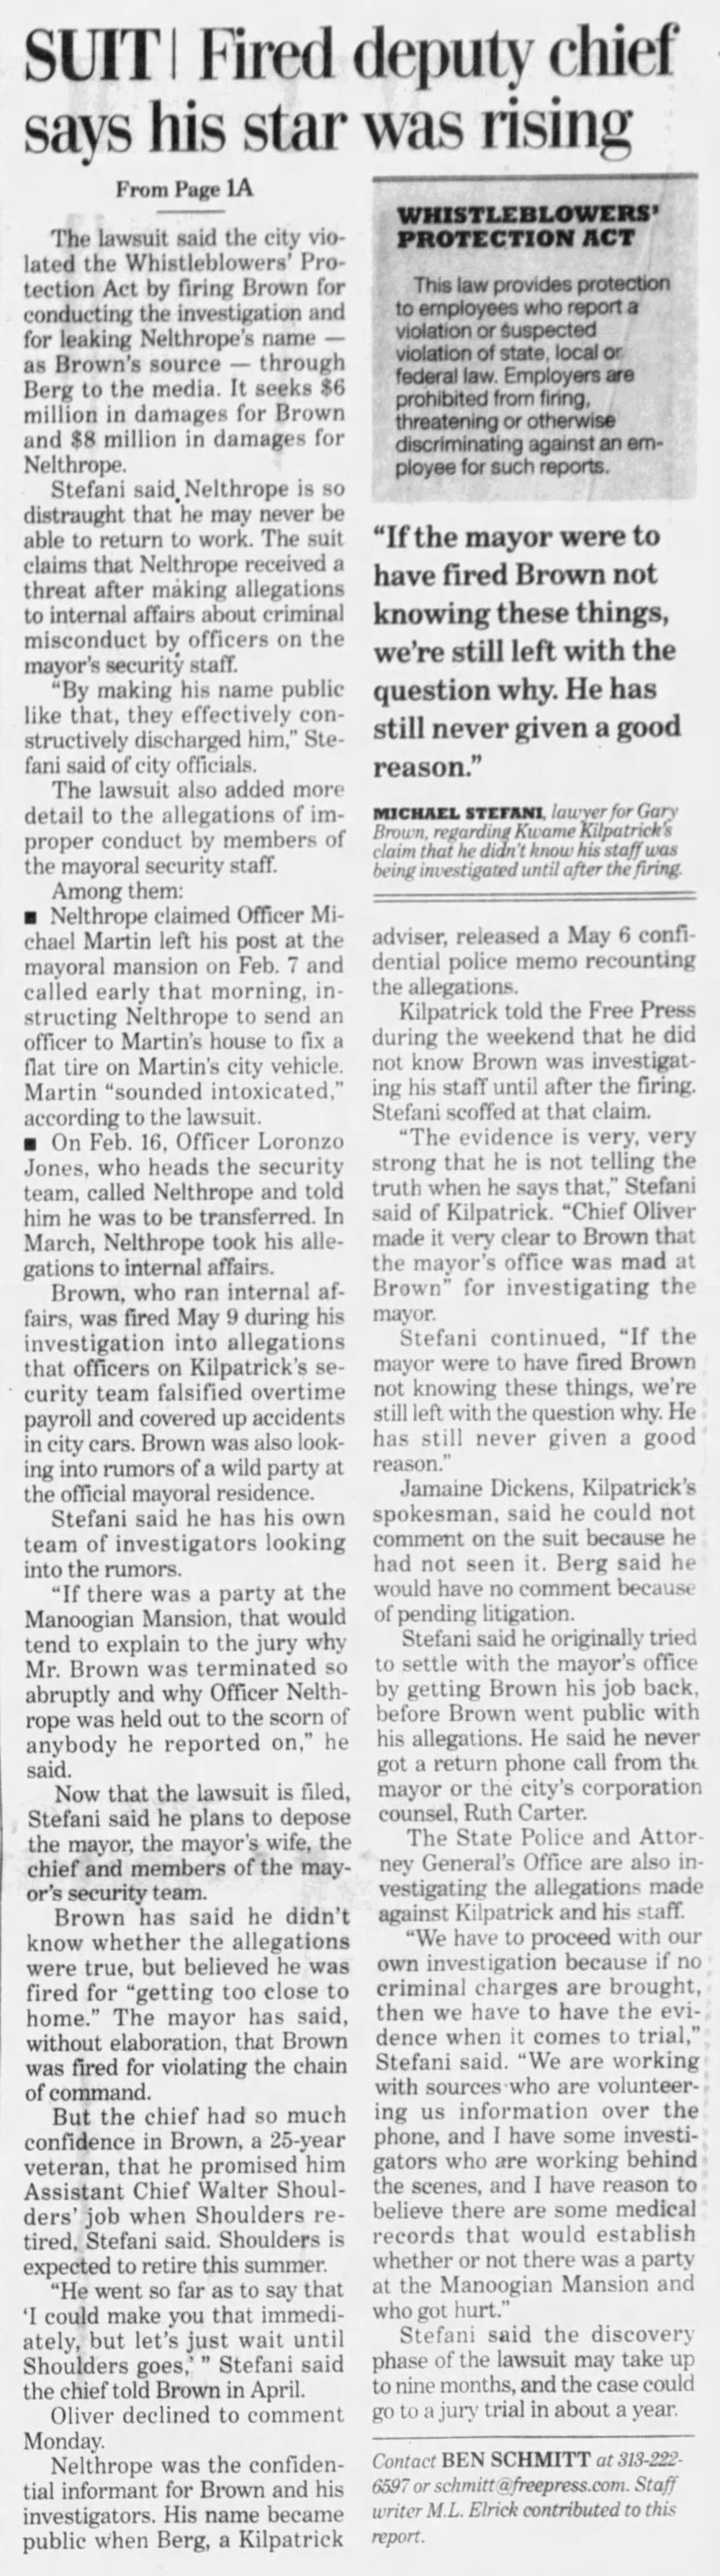 Detroit_Free_Press_Tue__Jun_3__2003_ (1).jpg